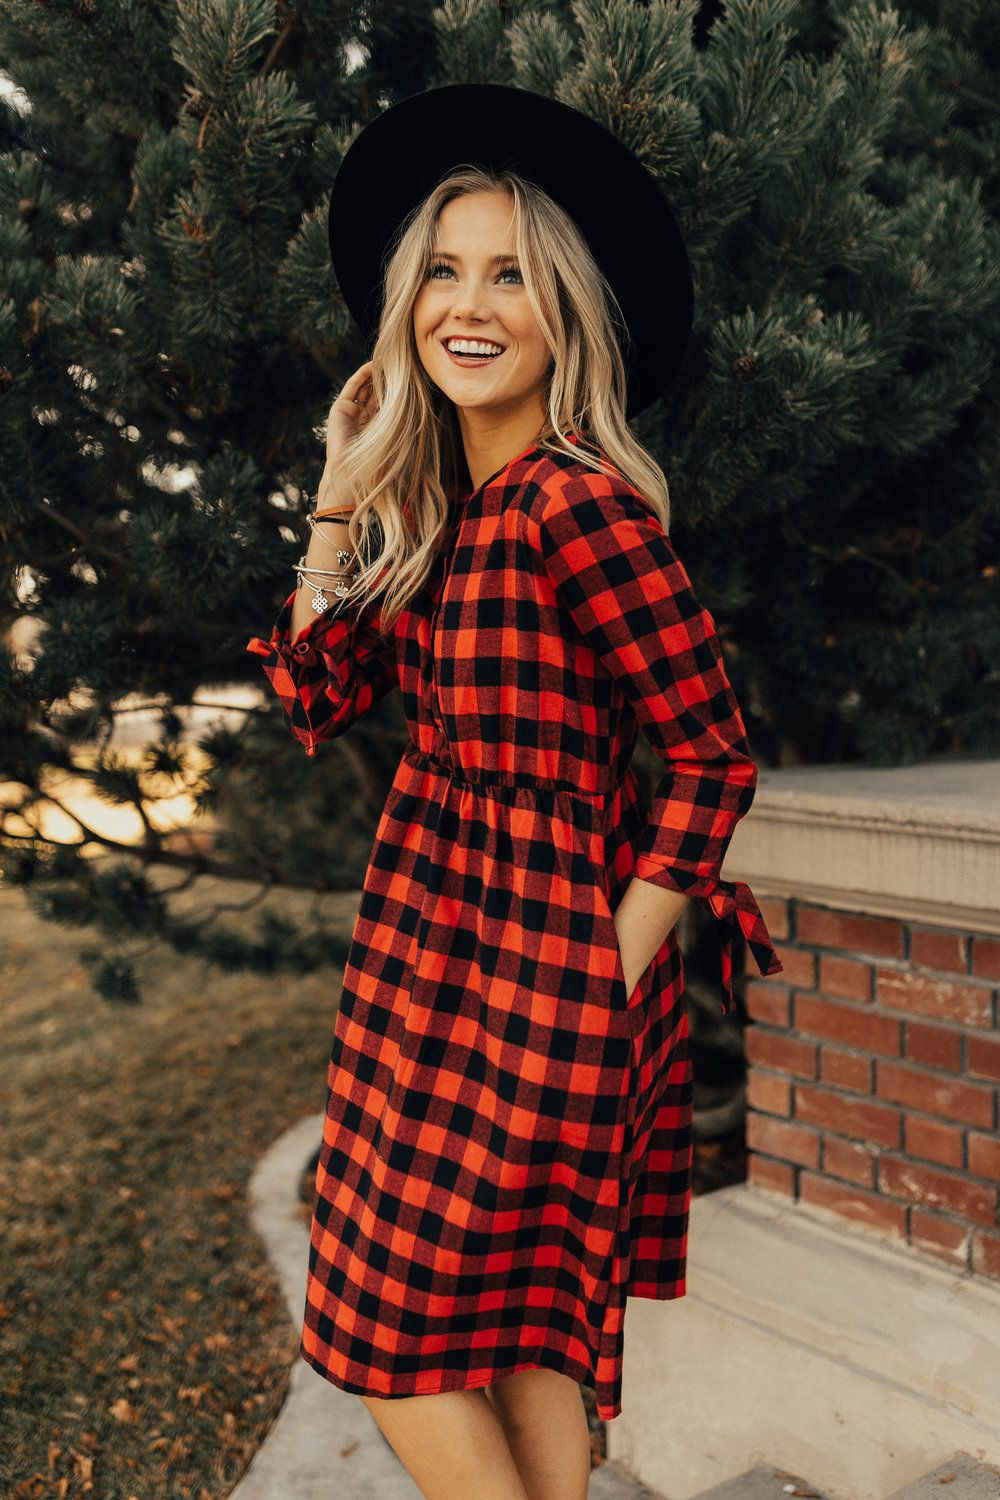 2d636adf654 Red + Black Buffalo Plaid Dress 3 4 Sleeves w Ribbon Tie Cuff Hidden Seam  Pockets Button Up Front Gathered Waist Nursing Friendly View Size Chart  Model is ...